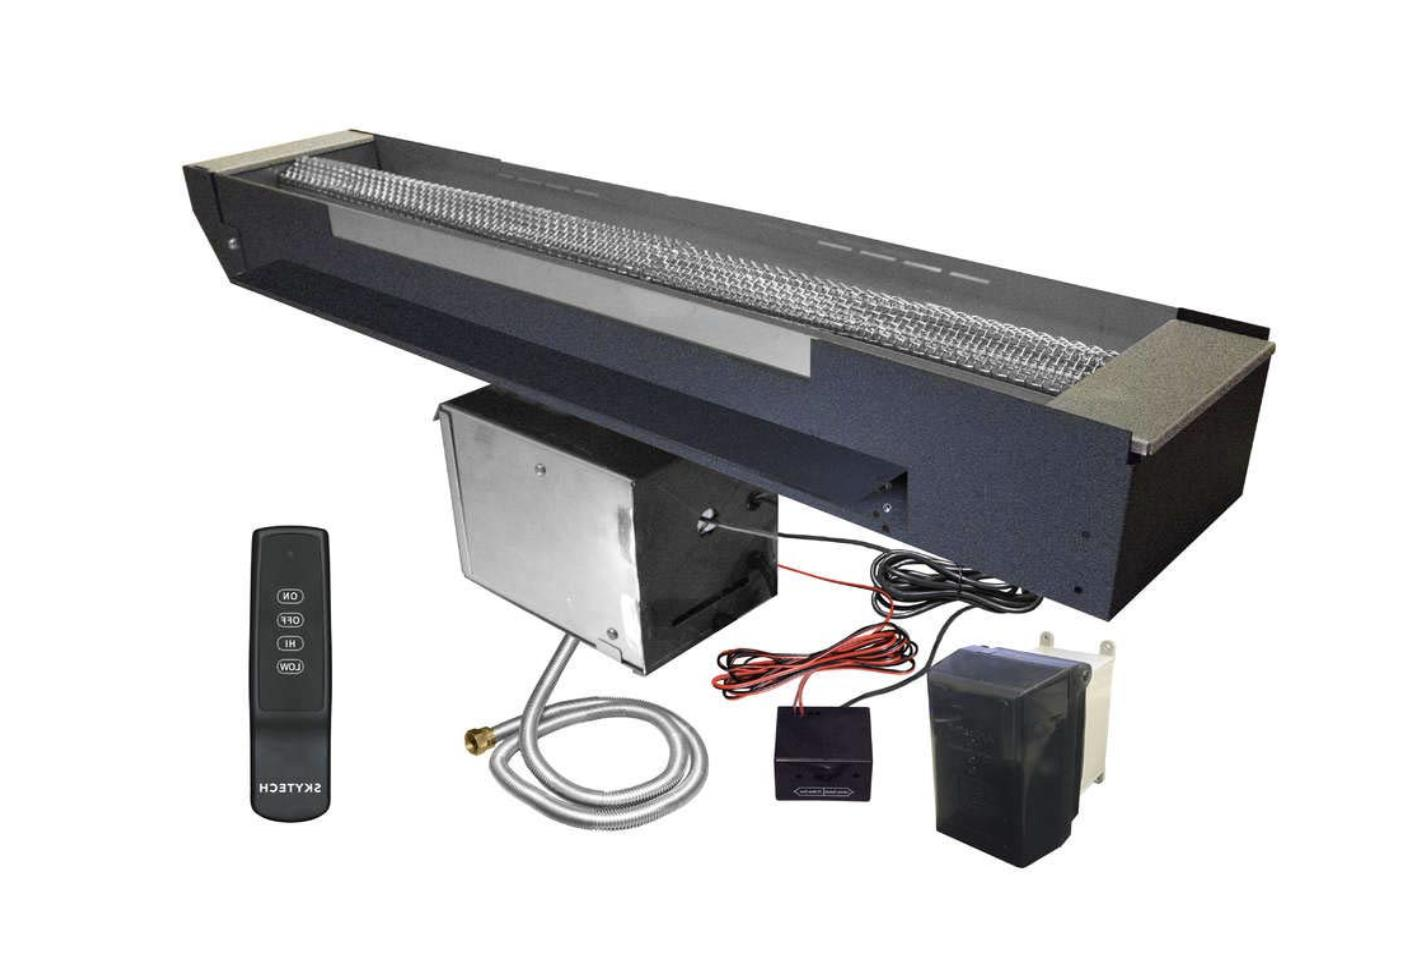 fpb 30ltfs n electronic ignition fire pit